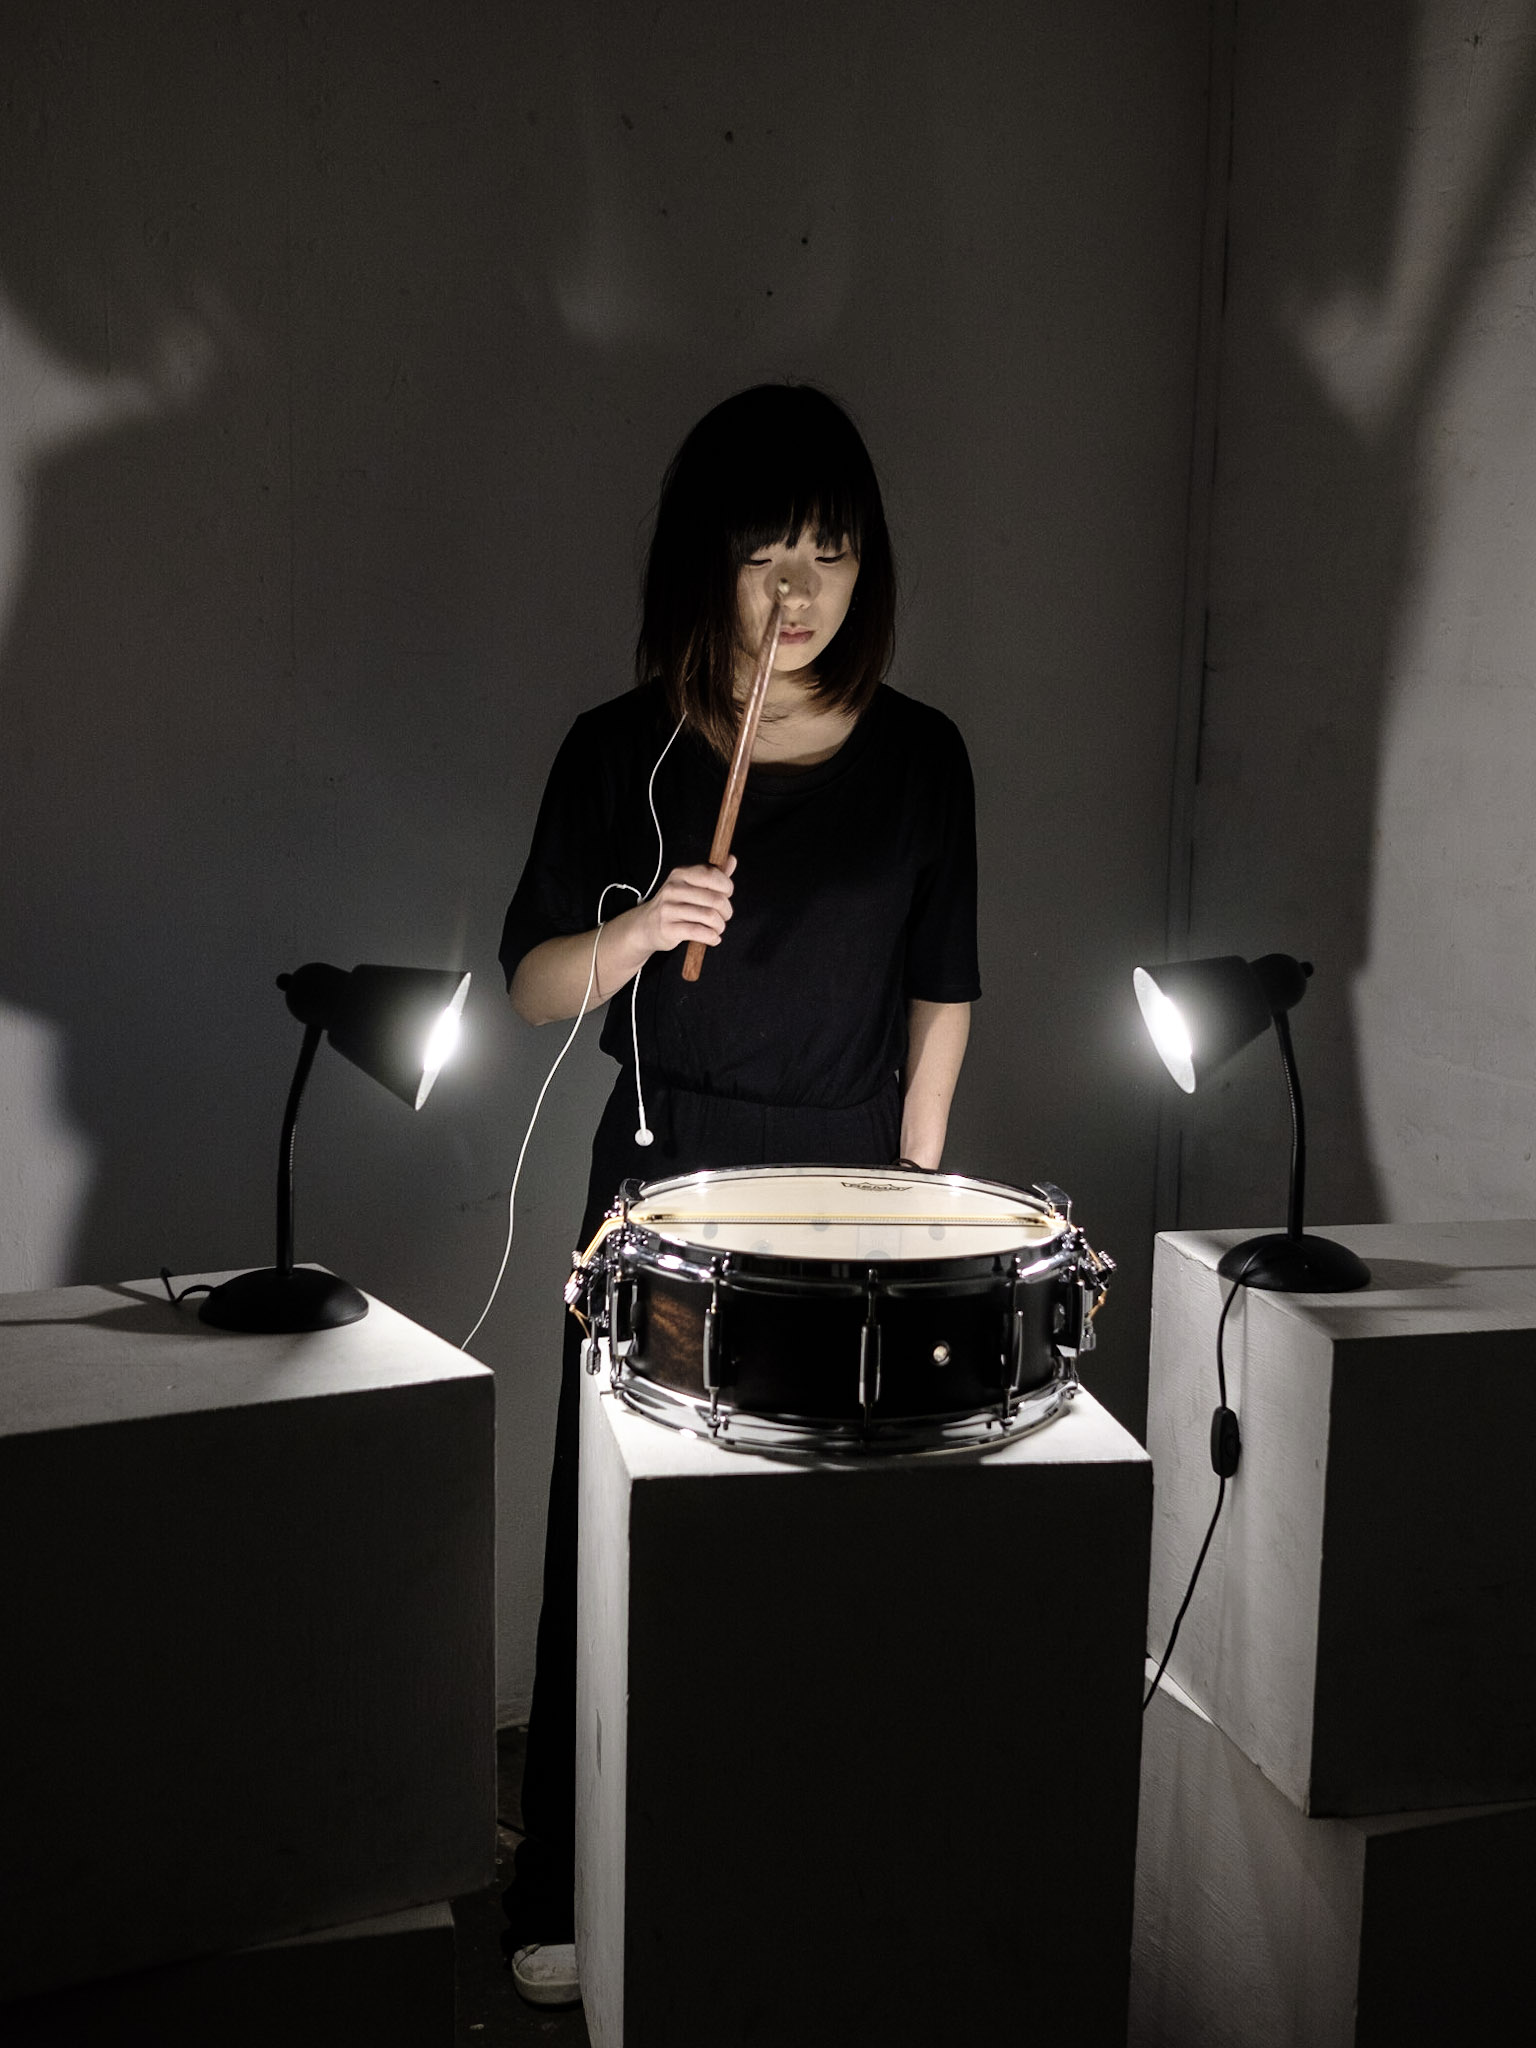 Picture of percussionist Angela Wai-Nok Hui by Dimitri Djuric